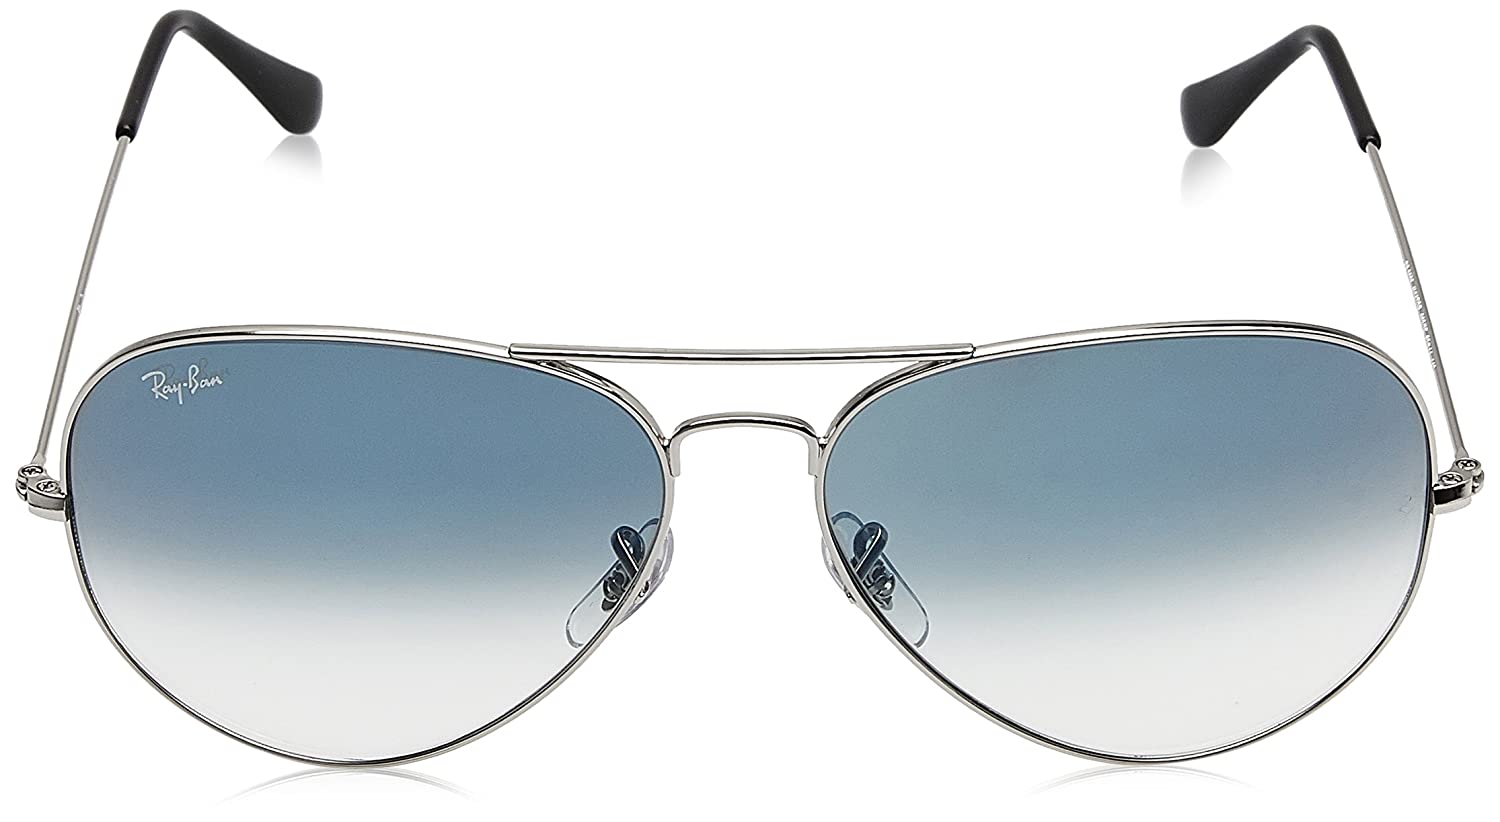 81d1865fcae Ray-Ban Aviator Sunglasses (RB3025 003 3F62